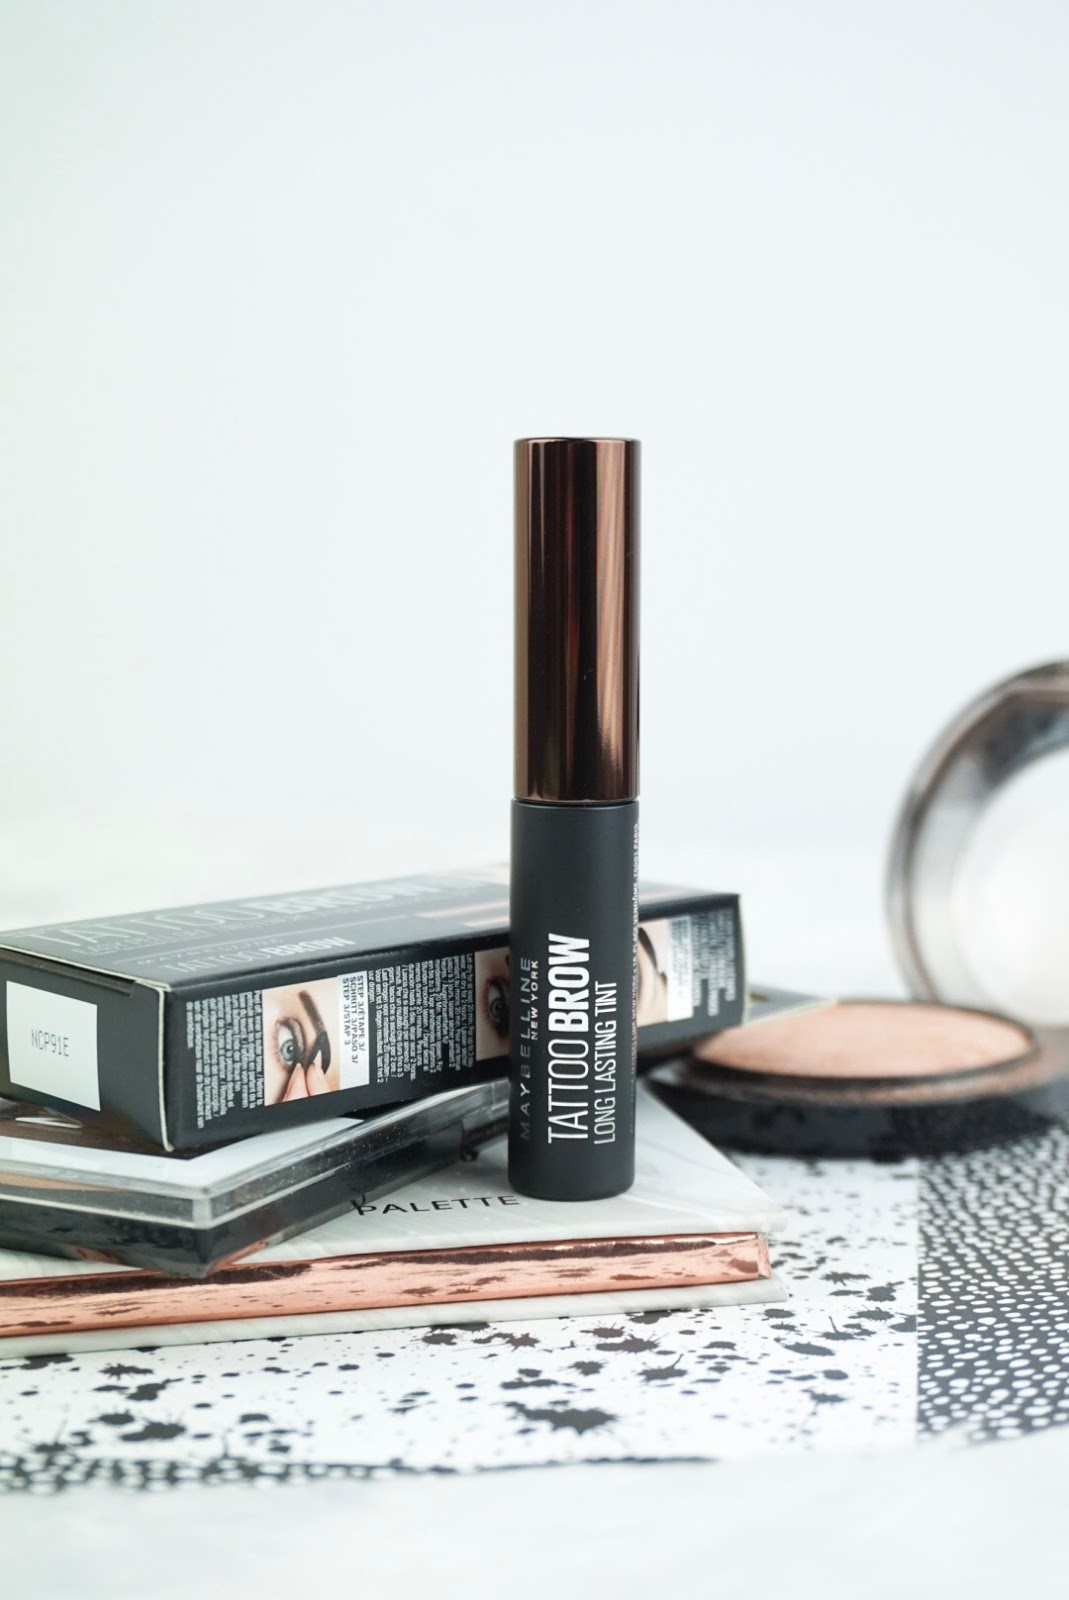 The Maybelline Tattoo Brow : Review